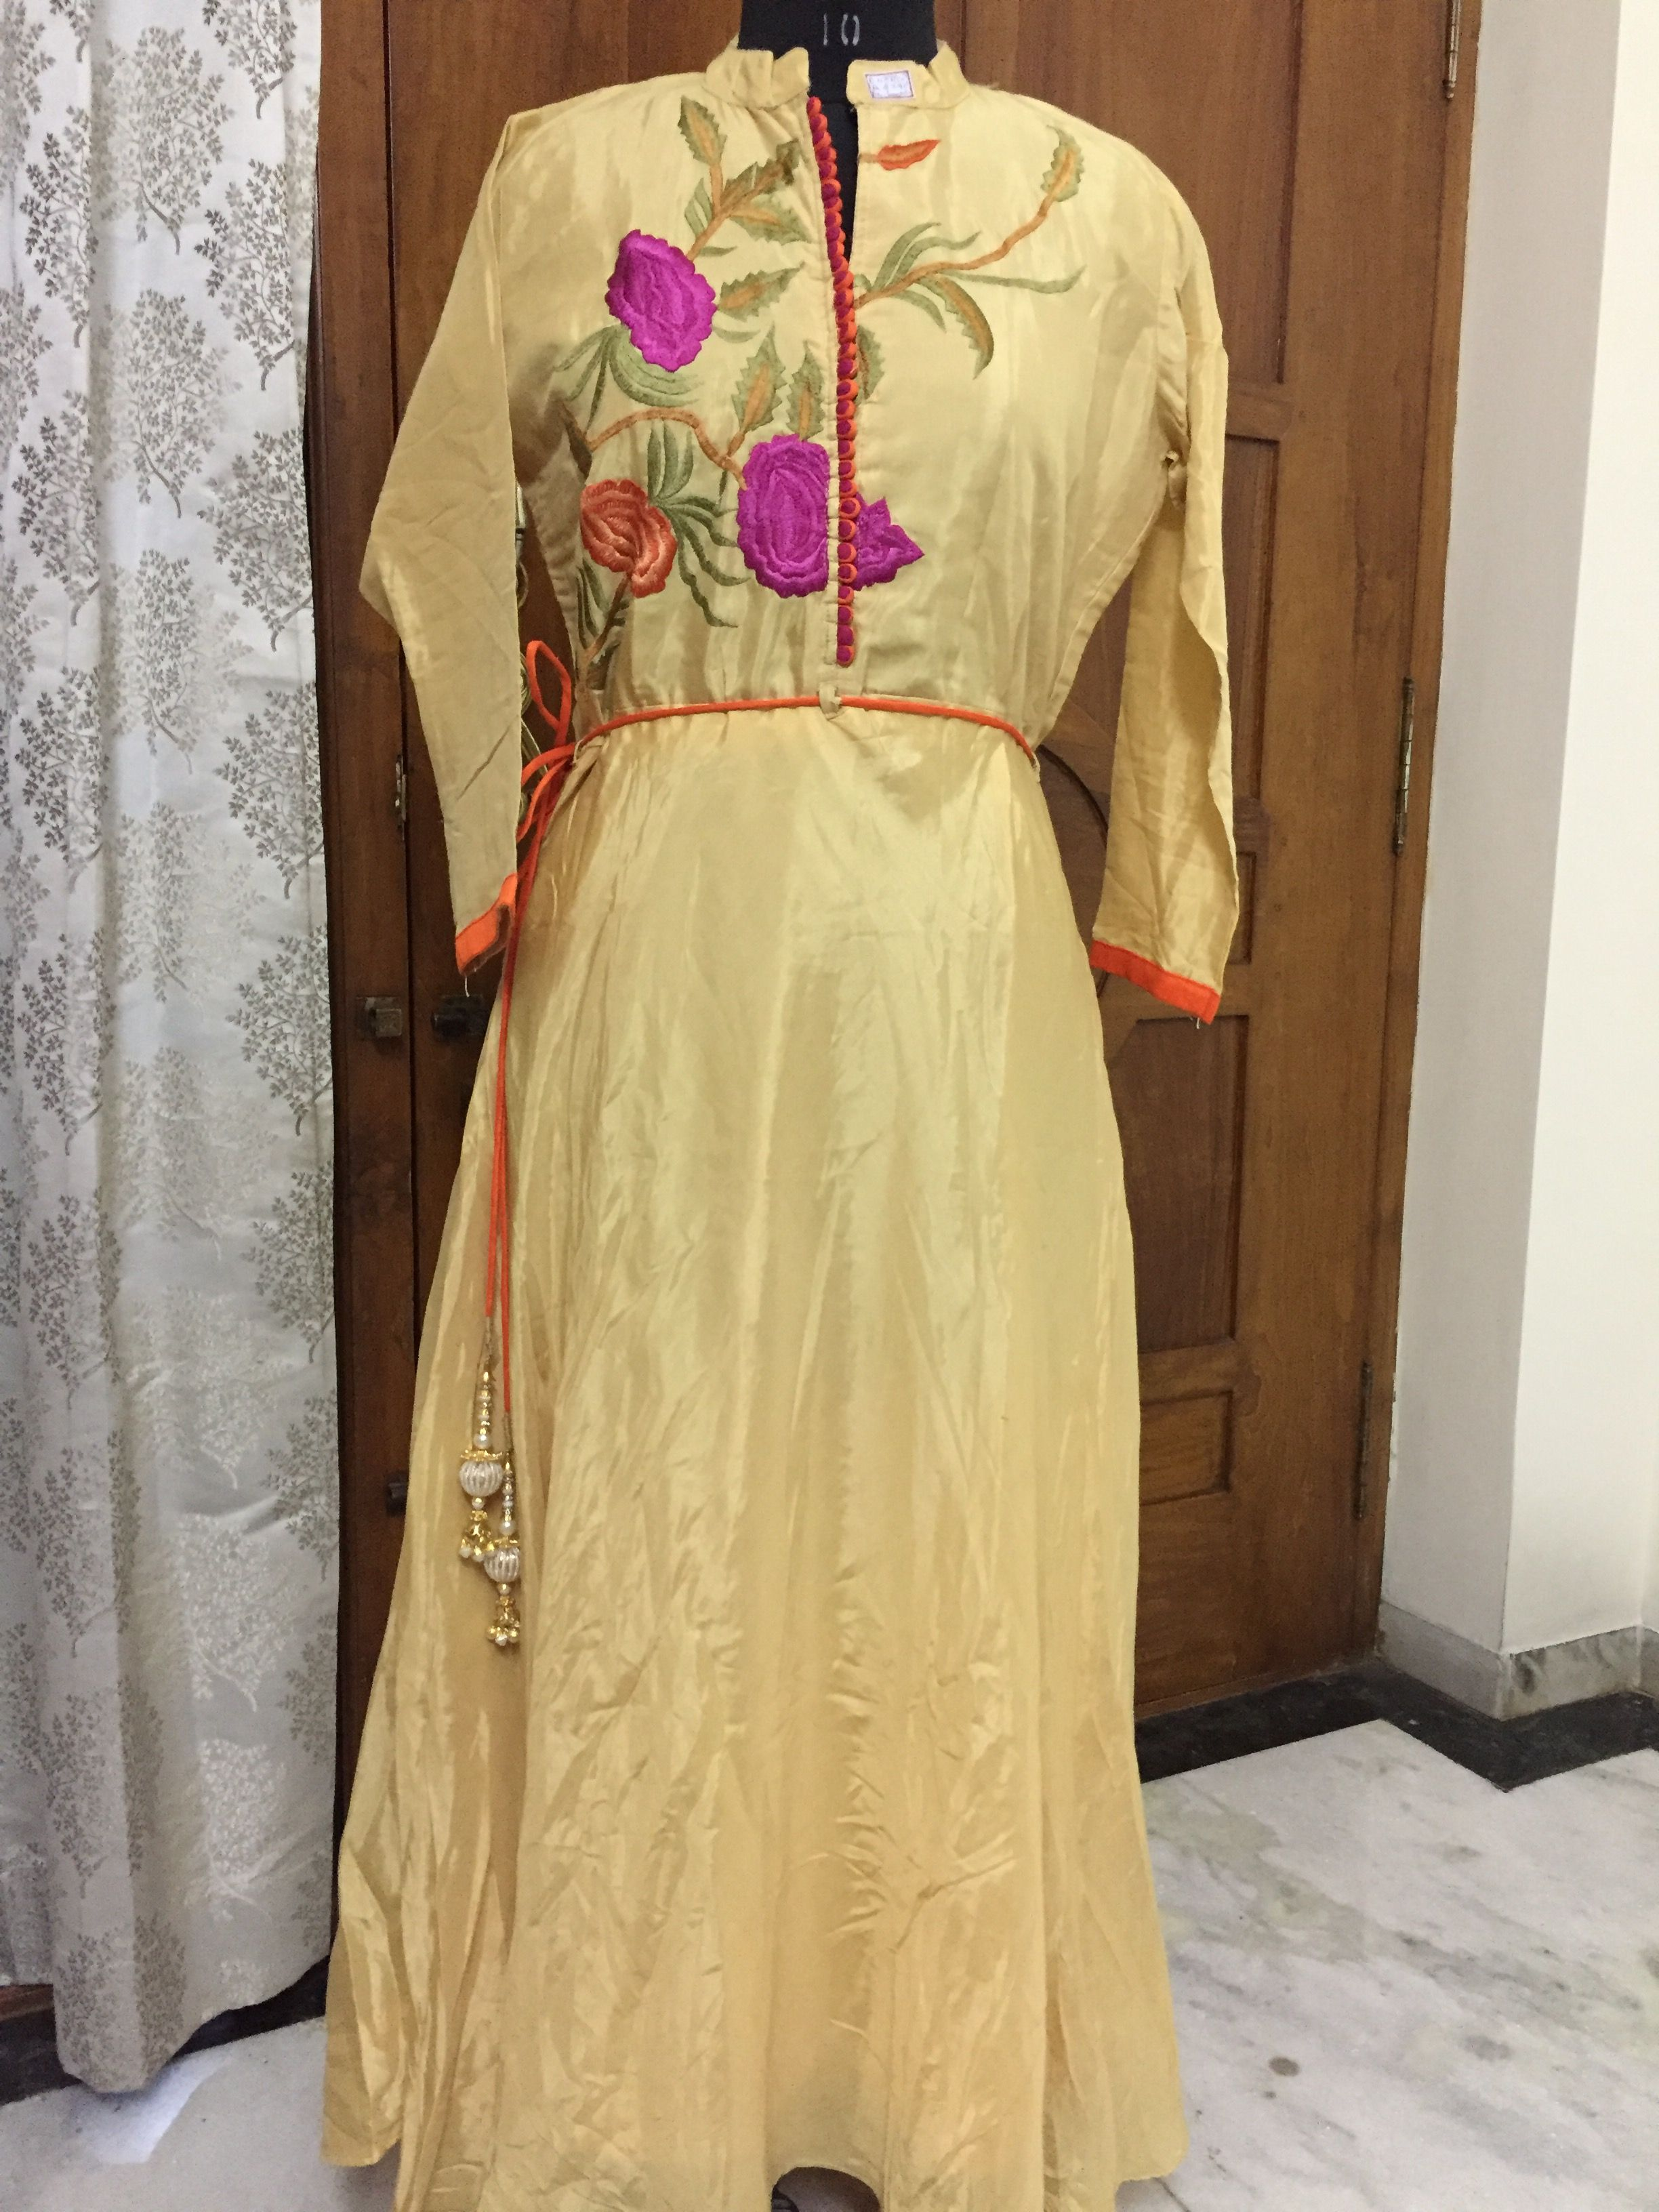 CODE: long kurti MATERIAL:yellow silk anarkali long kurta with floral embroidery on the yoke  PRICE:ping us for price TO BLOCK CALL OR WHATSAPP US ON +919618419046 or drop us a mail trendyweaves@gmail.com  #kurties #indowestern #readymade #designerkurties #trendy #trendyweaves https://www.facebook.com/trendyweaves/posts/1446132685419256:0